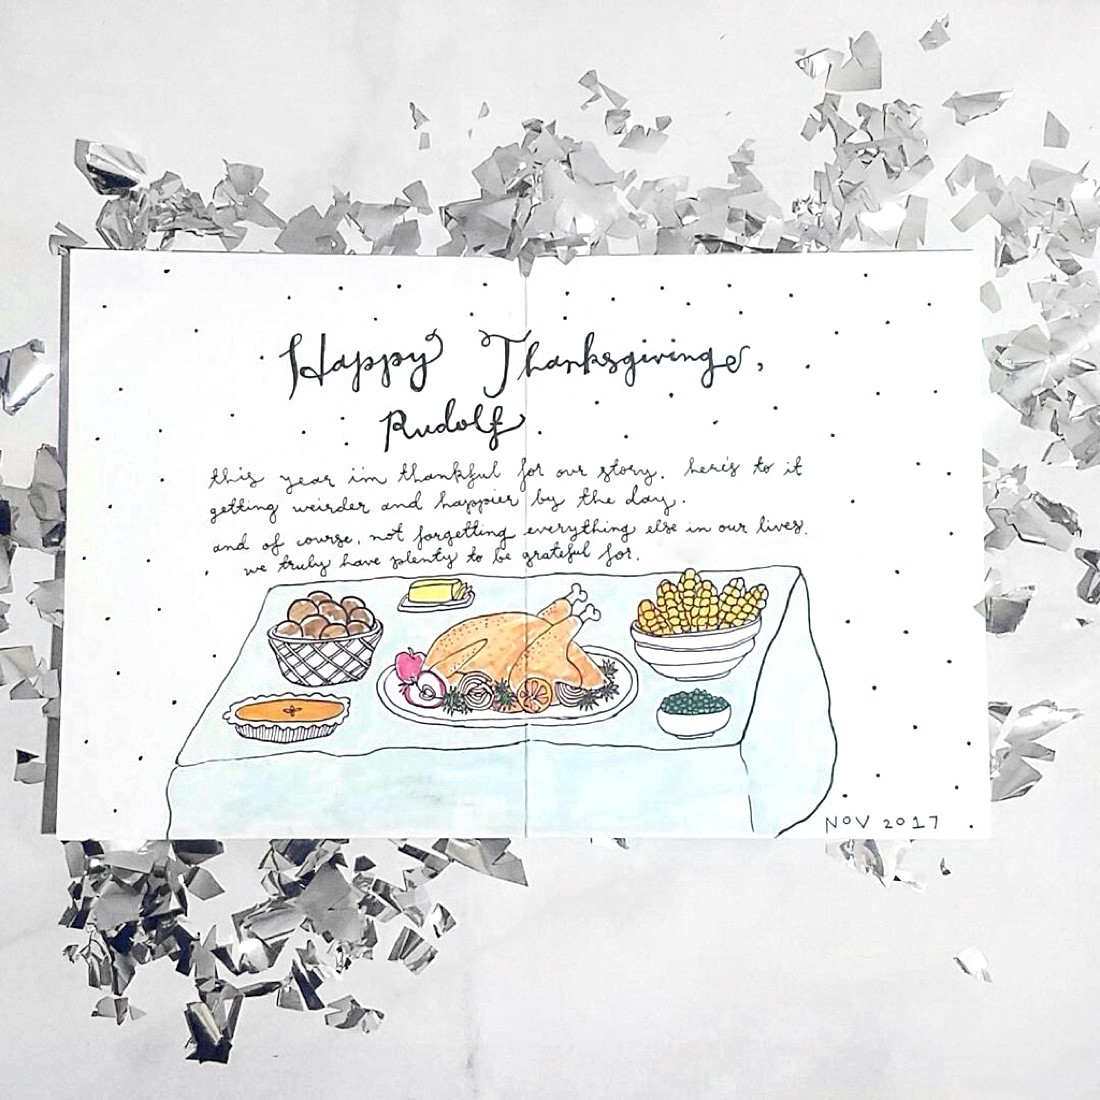 What to write in your thanksgiving cards punkpost medium to the cook we all immediately think of food and then more food when it comes to thanksgiving but who prepared all that goodness kristyandbryce Image collections